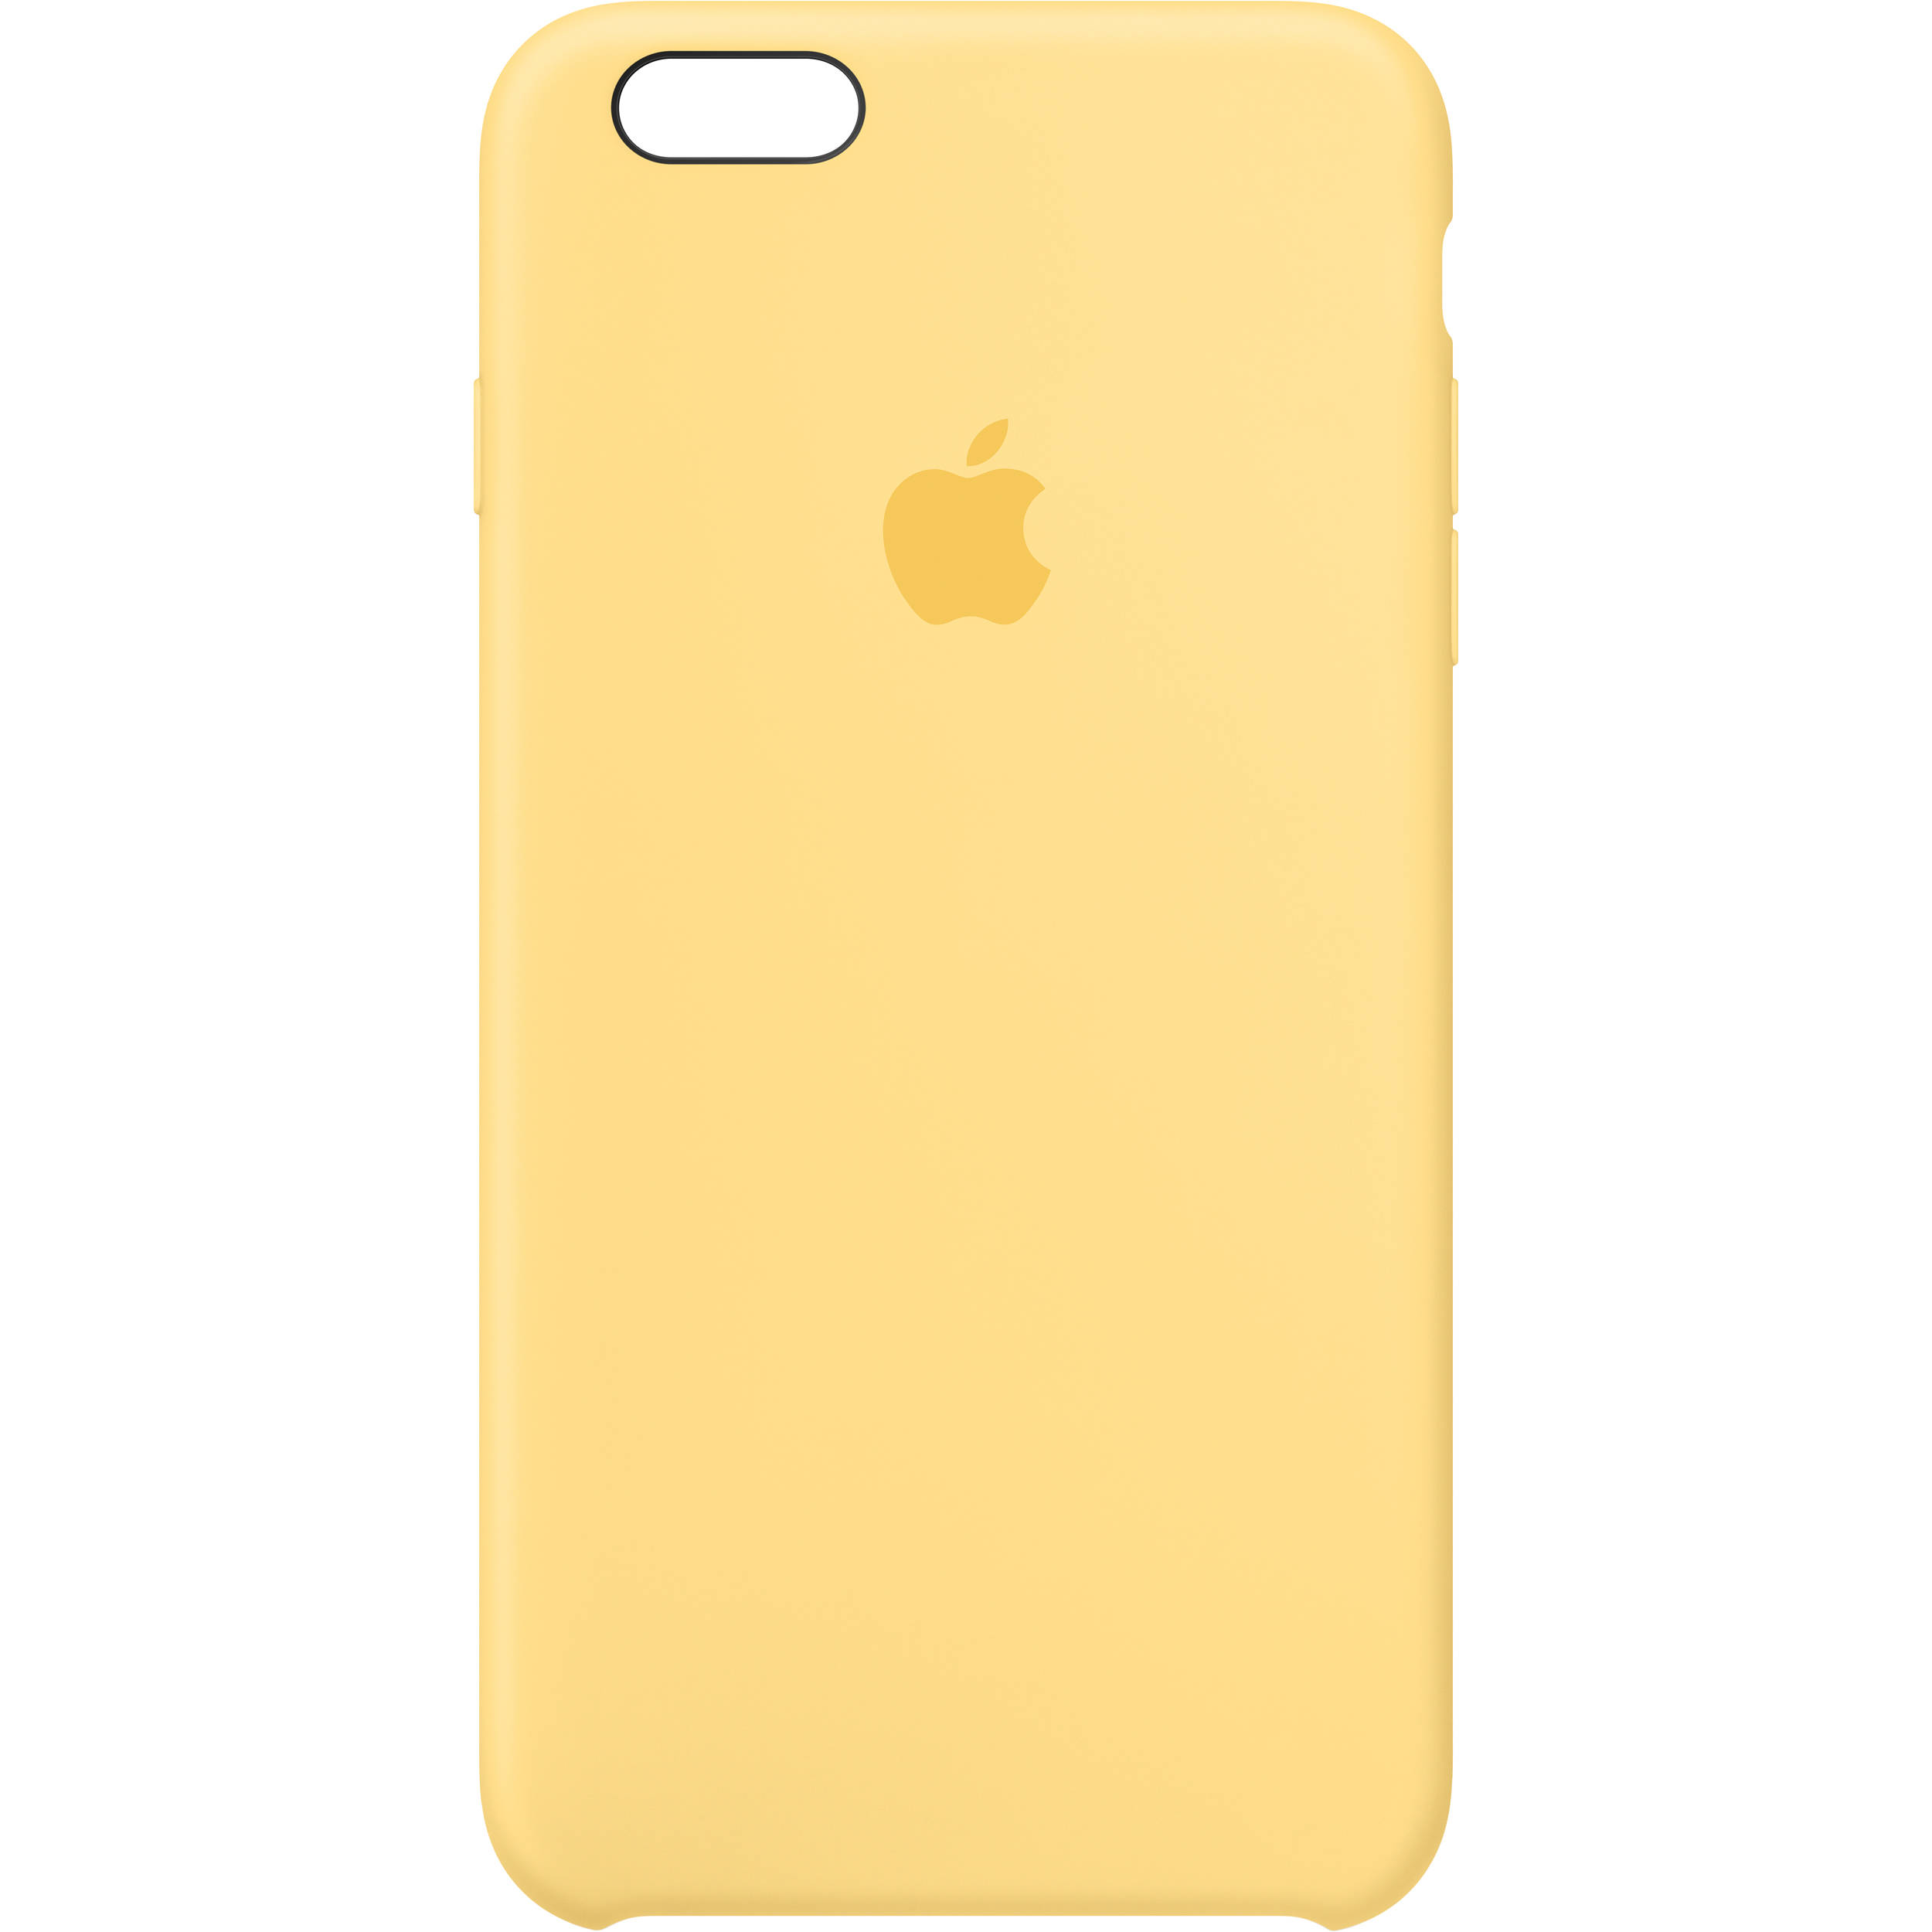 new style b6e14 c1d47 Apple iPhone 6 Plus/6s Plus Silicone Case (Yellow)